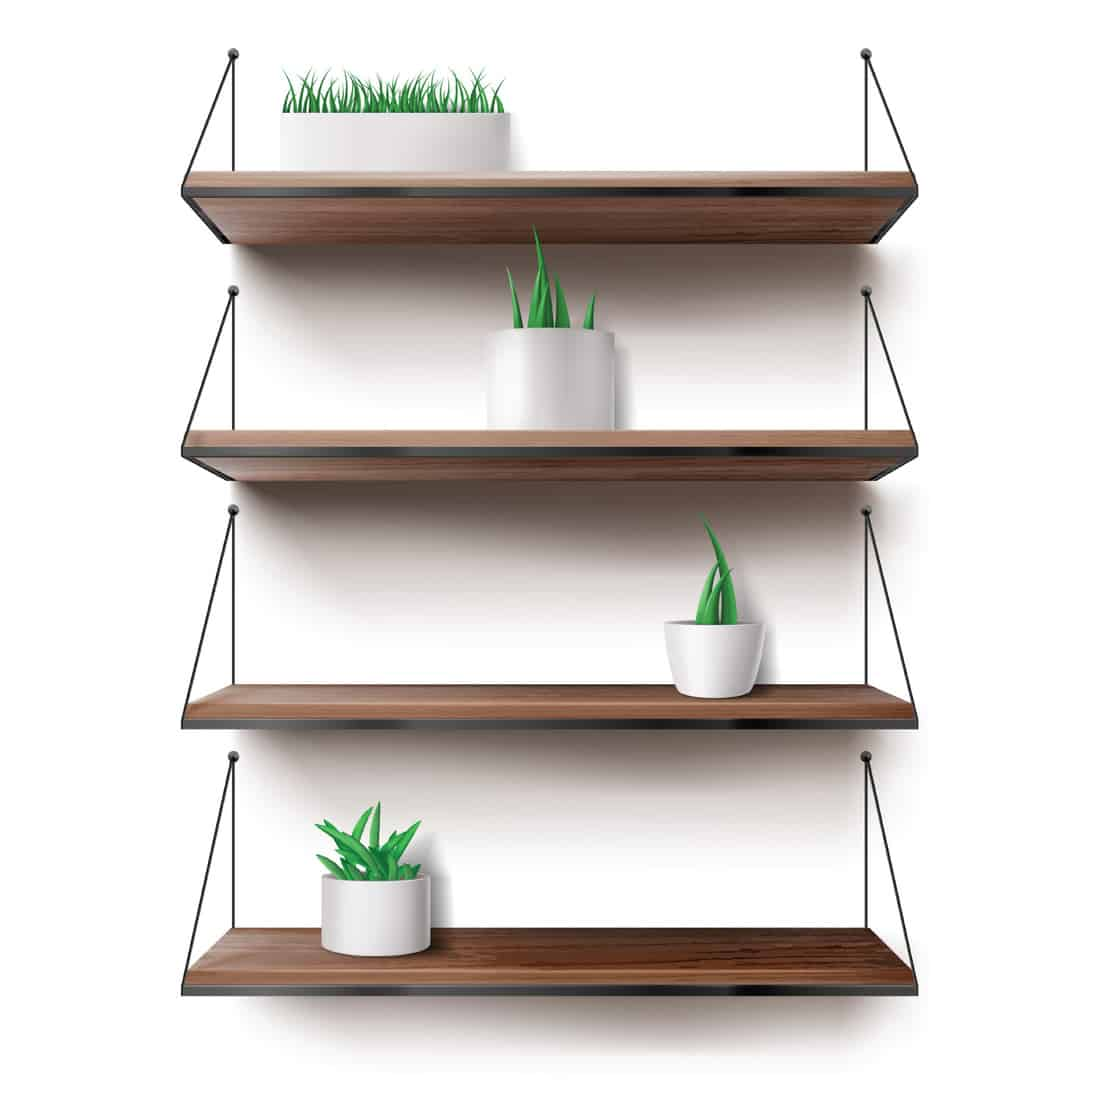 Wooden shelves hanging on ropes with plants in ceramics pots. Front racks on white wall